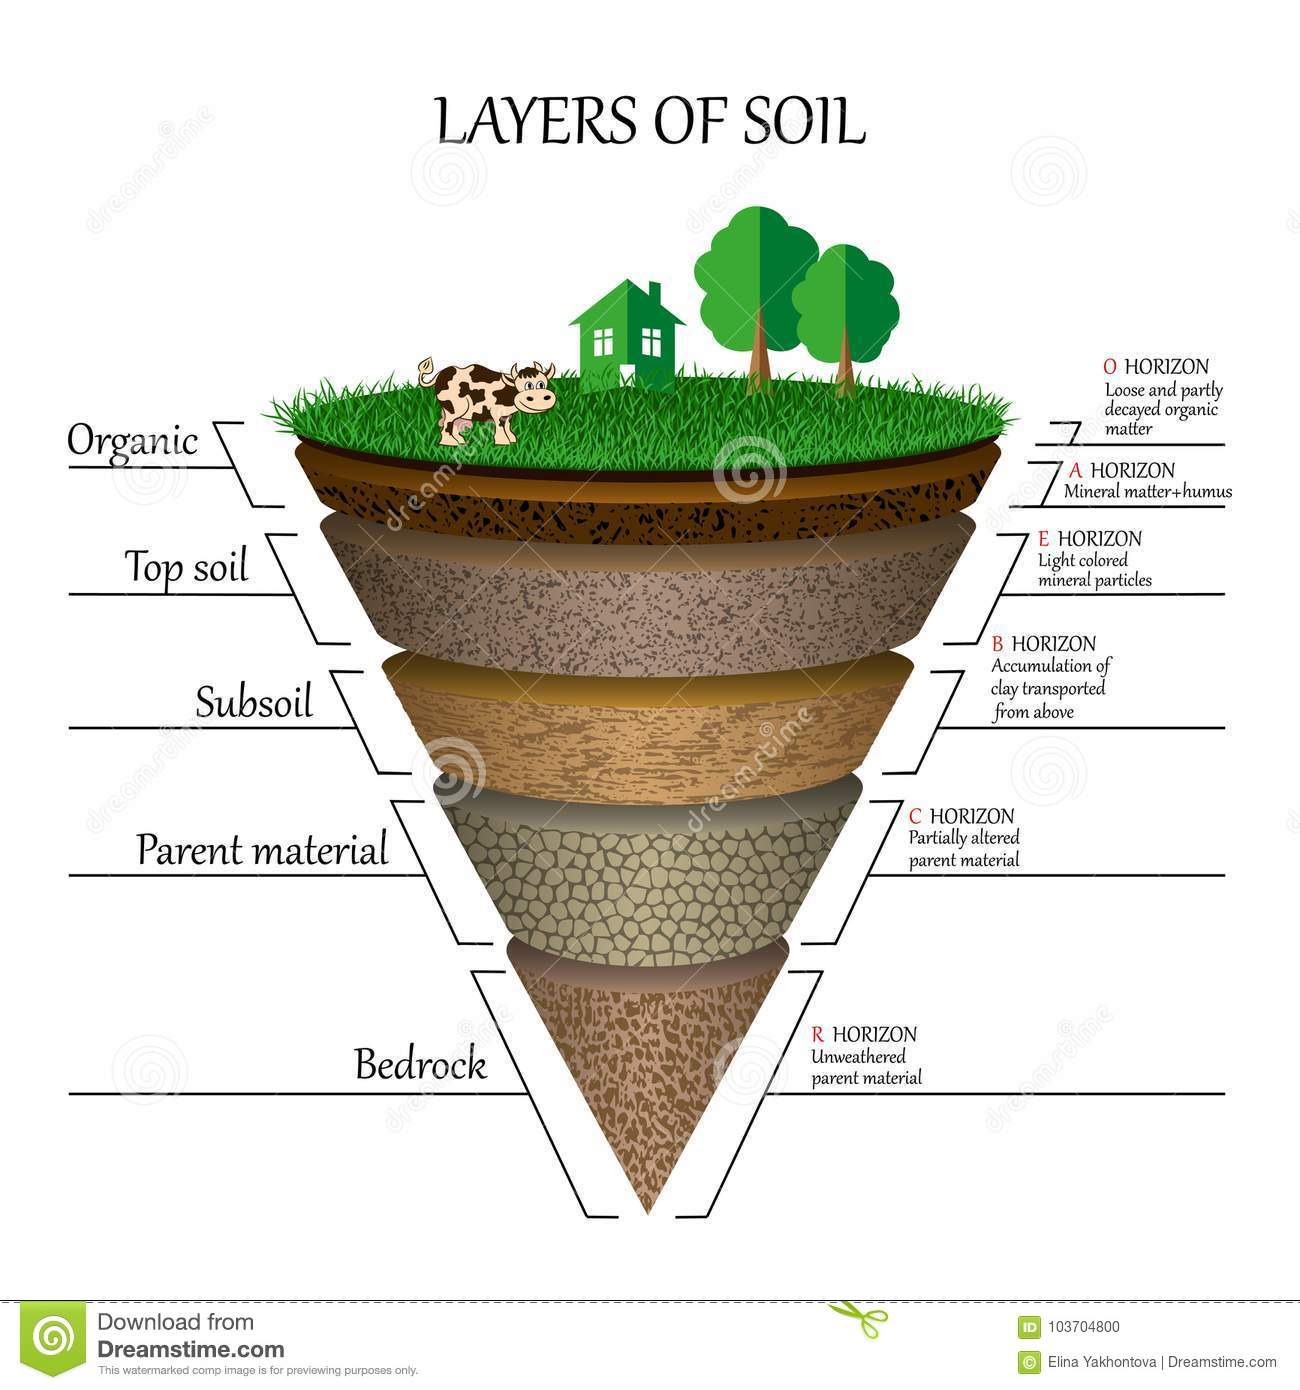 soil layers diagram pregnant dog anatomy of education mineral particles sand